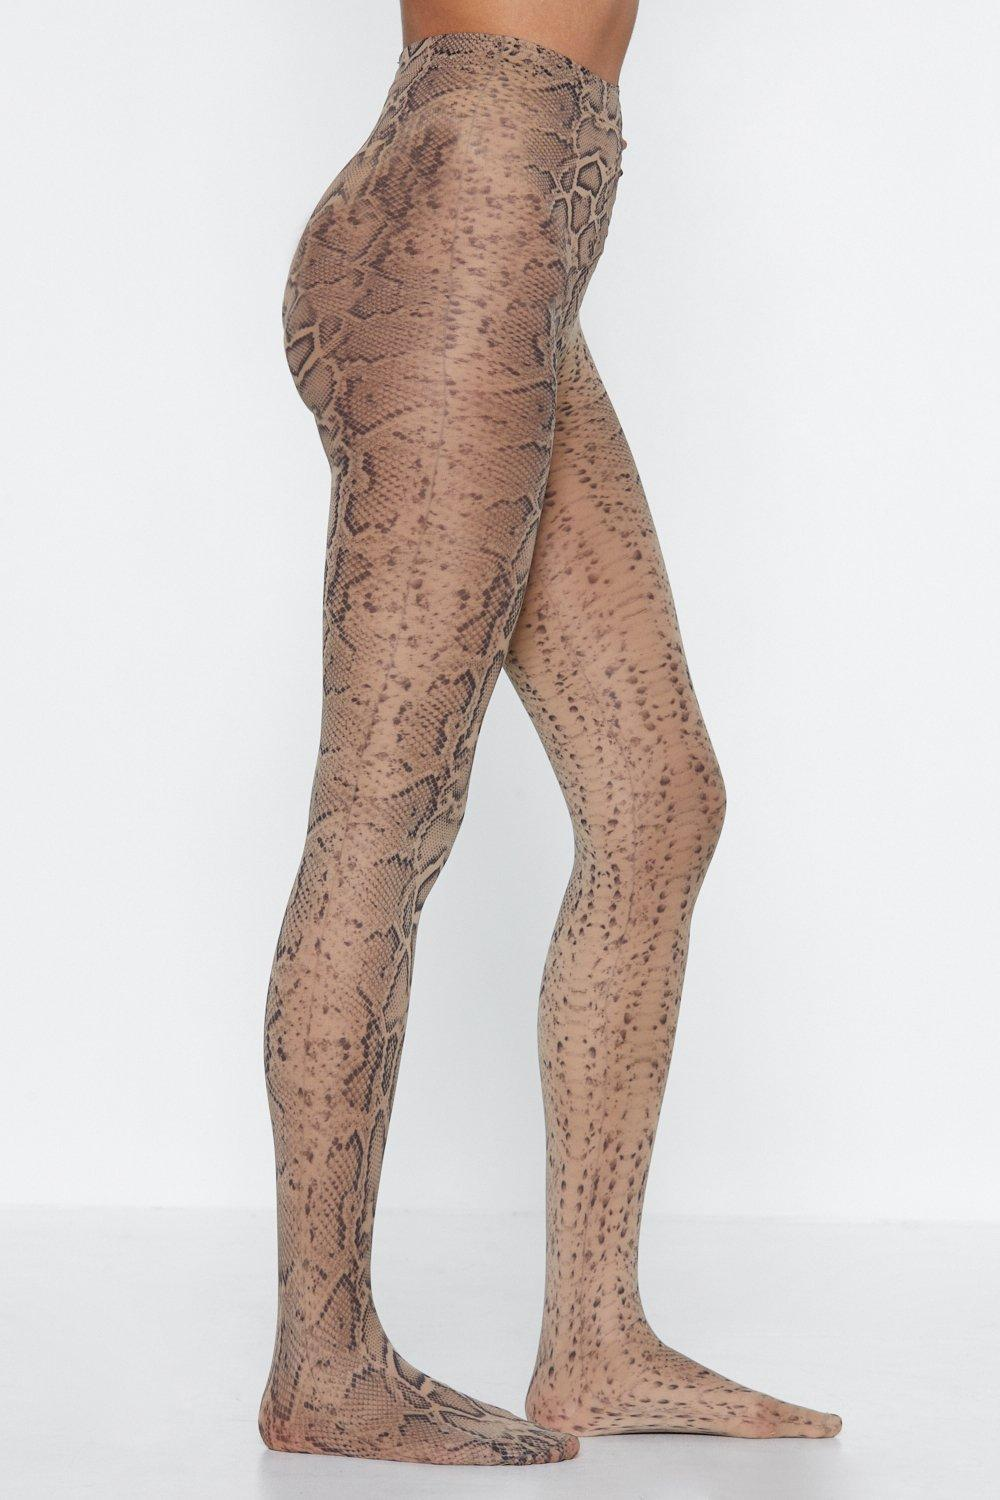 e063fae7fc6f2 Snake 'Em Wait Tights | Shop Clothes at Nasty Gal!